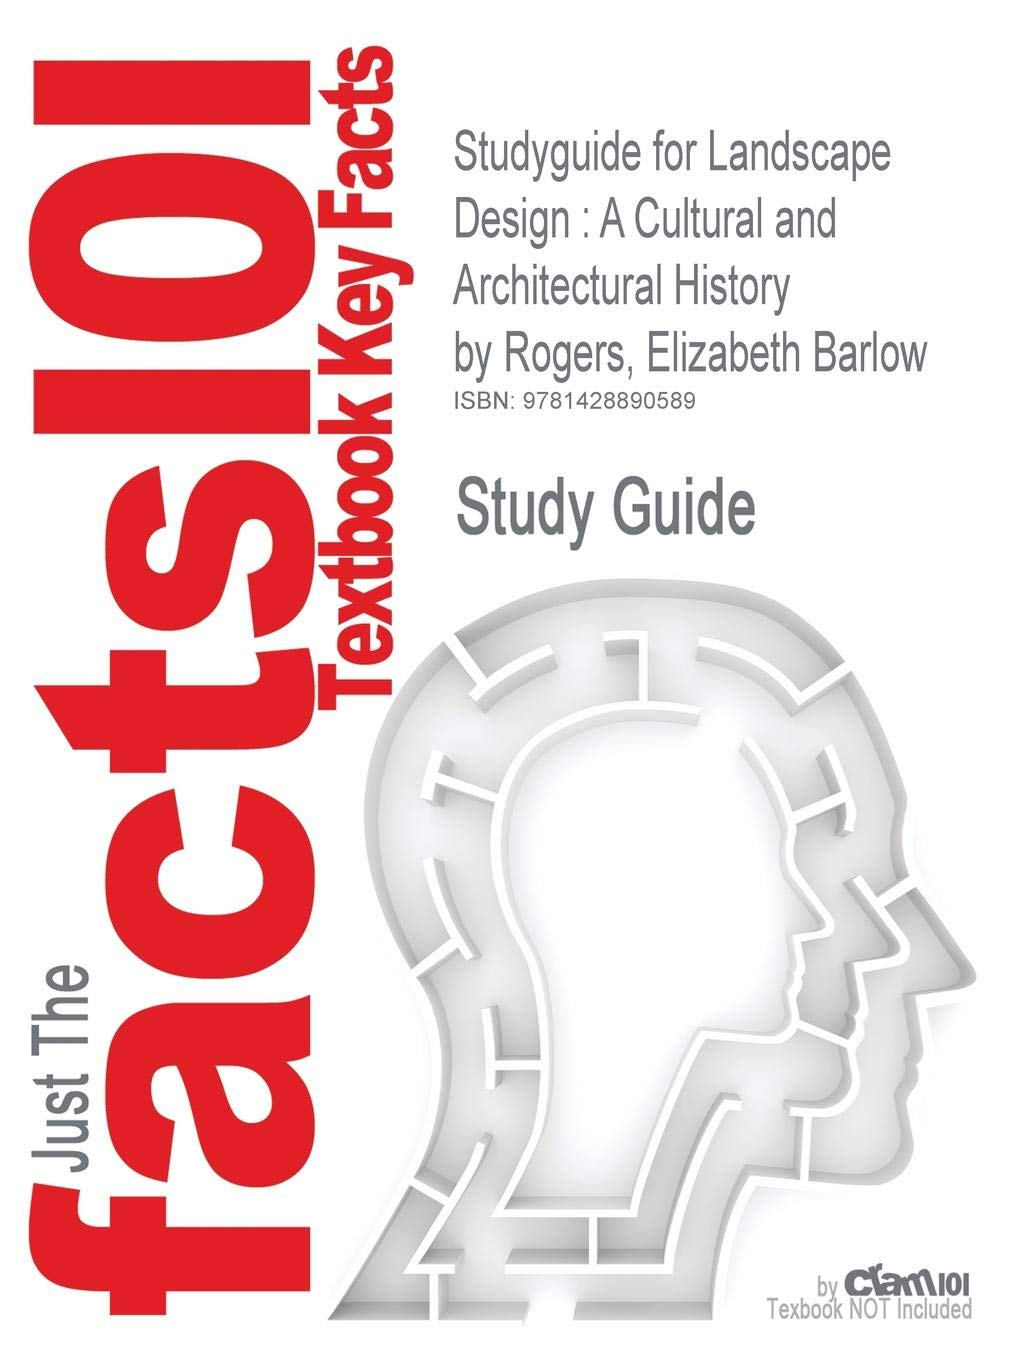 Buy Studyguide For Landscape Design A Cultural And Architectural